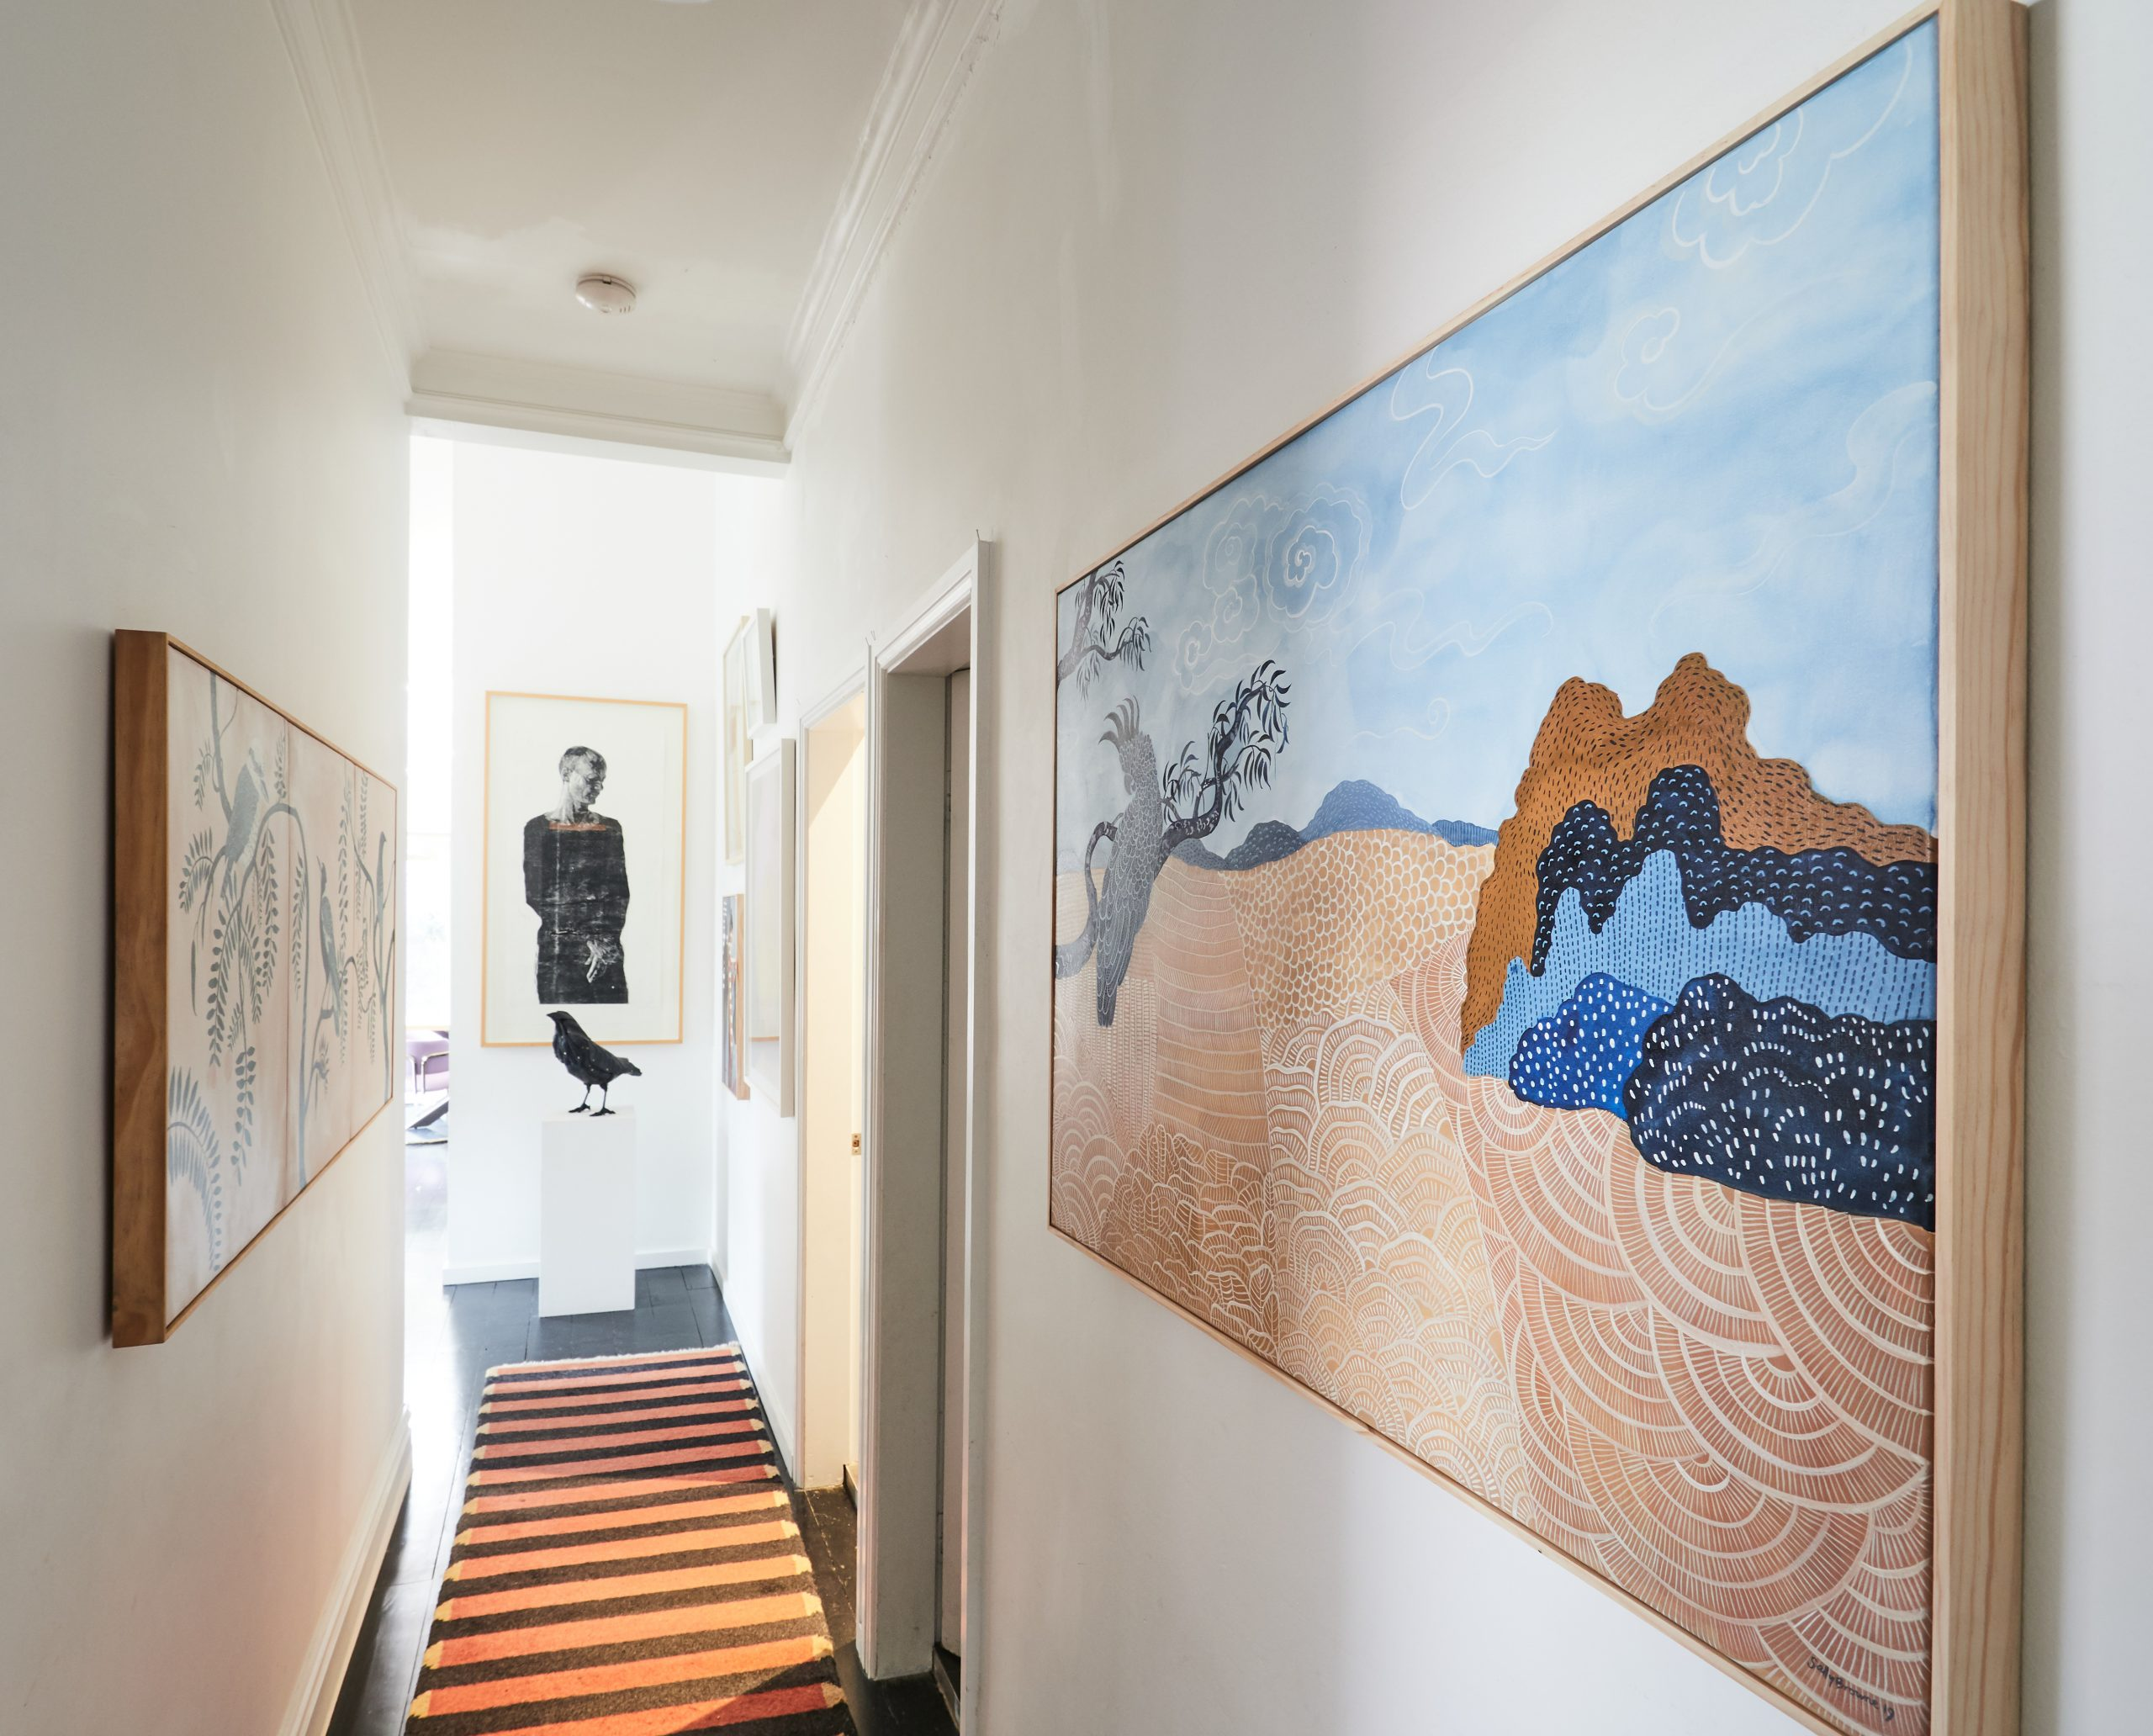 Hallway with striped rug and two large artworks